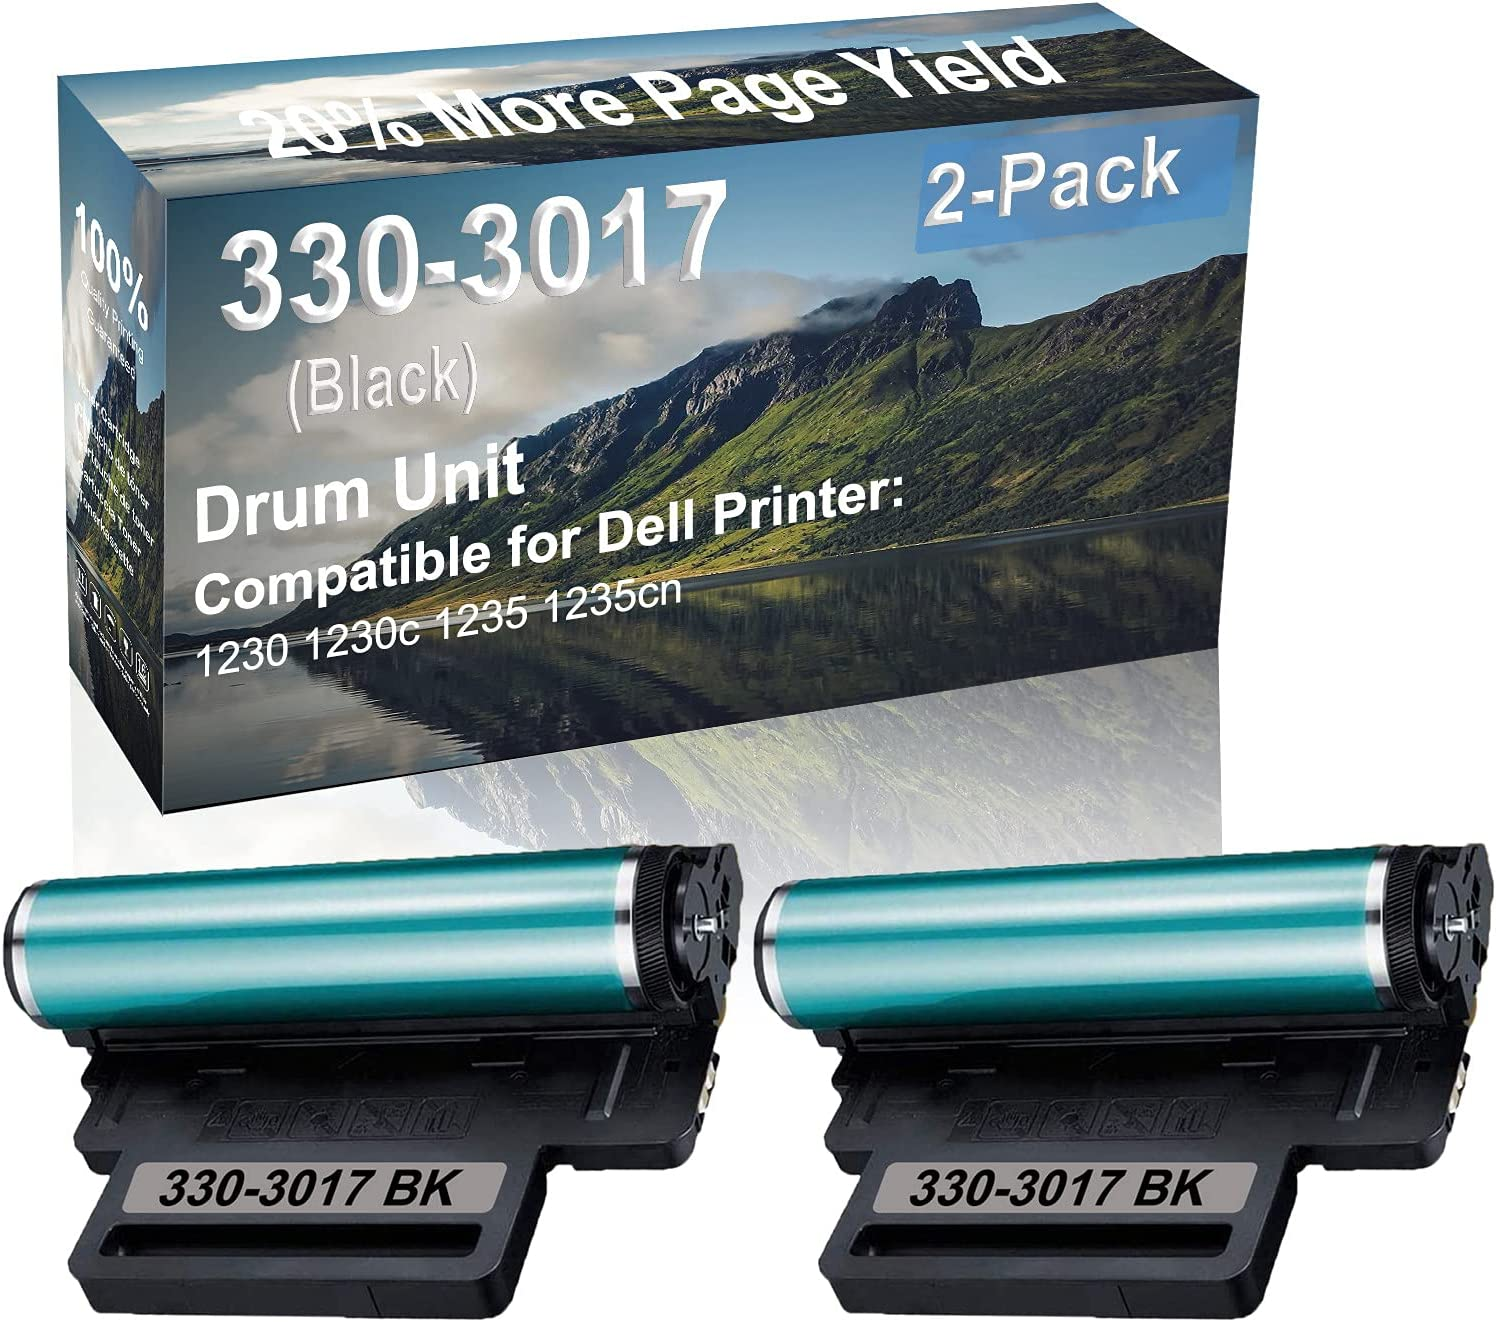 2-Pack Compatible Drum Unit (Black) Replacement for Dell 330-3017 Drum Kit use for Dell 1230 1230c 1235 1235cn Printer